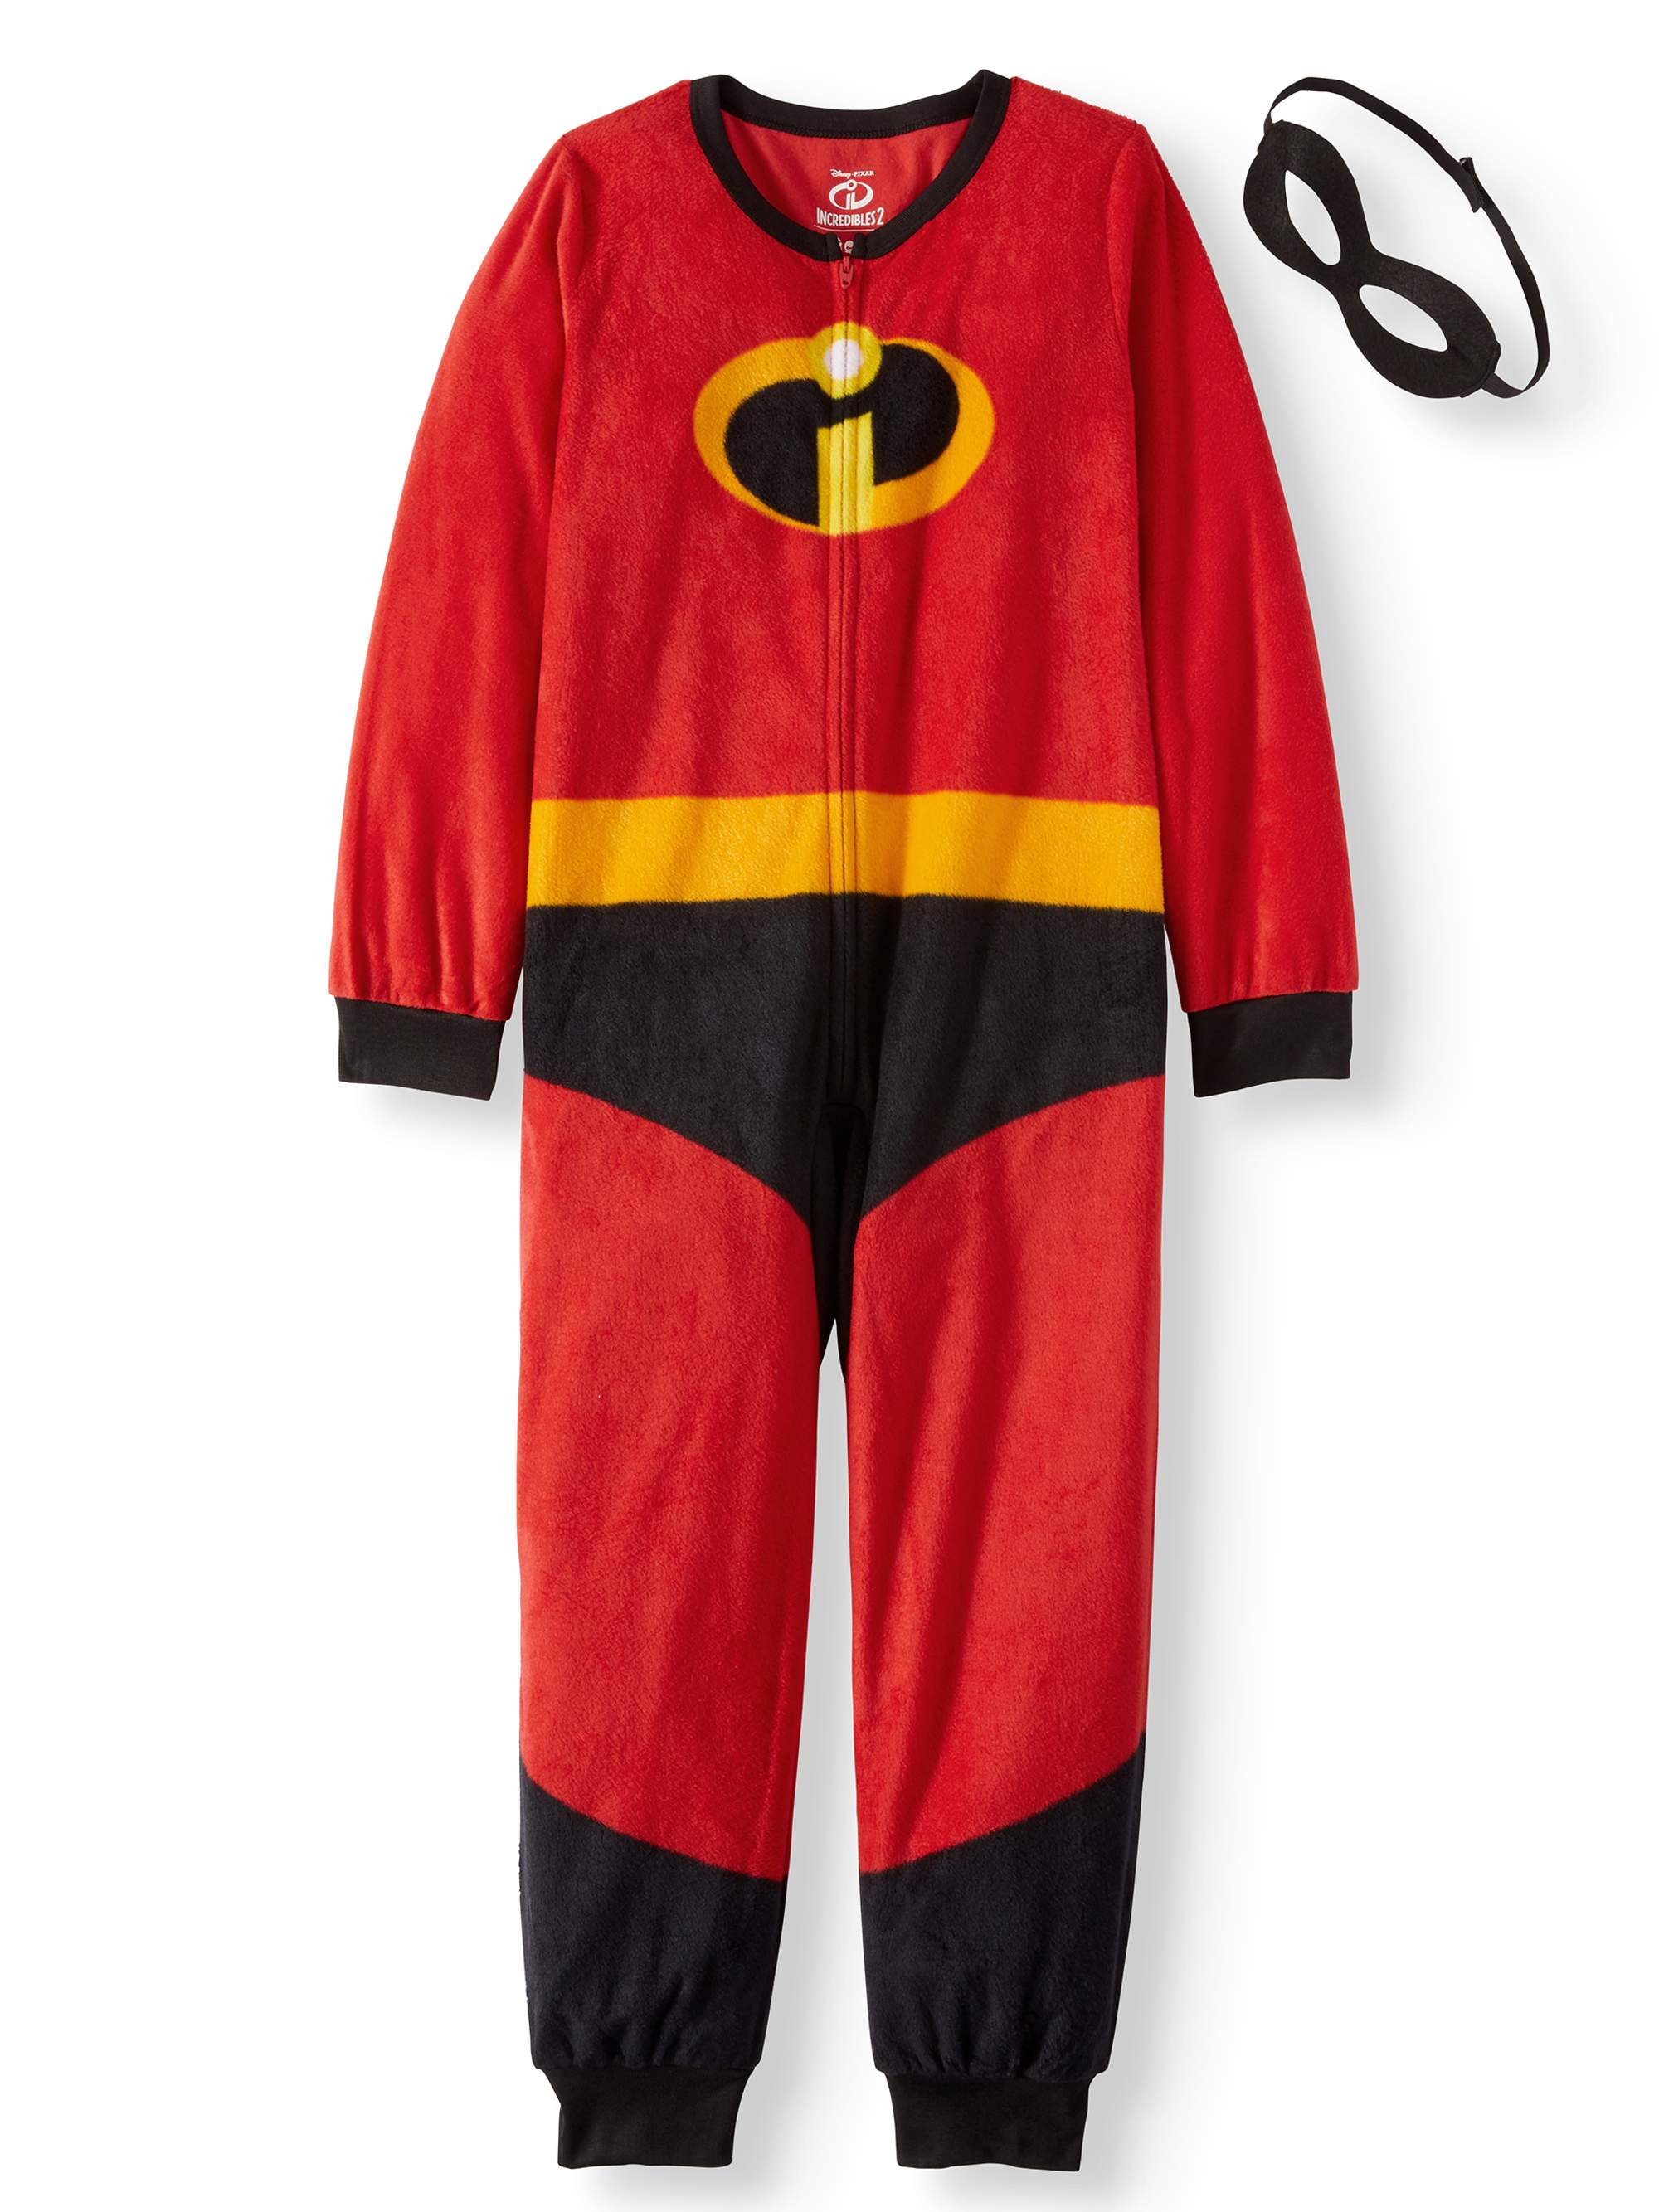 Disney Pixar Incredibles Dash Boys Toddler Pajama Set Size 4T